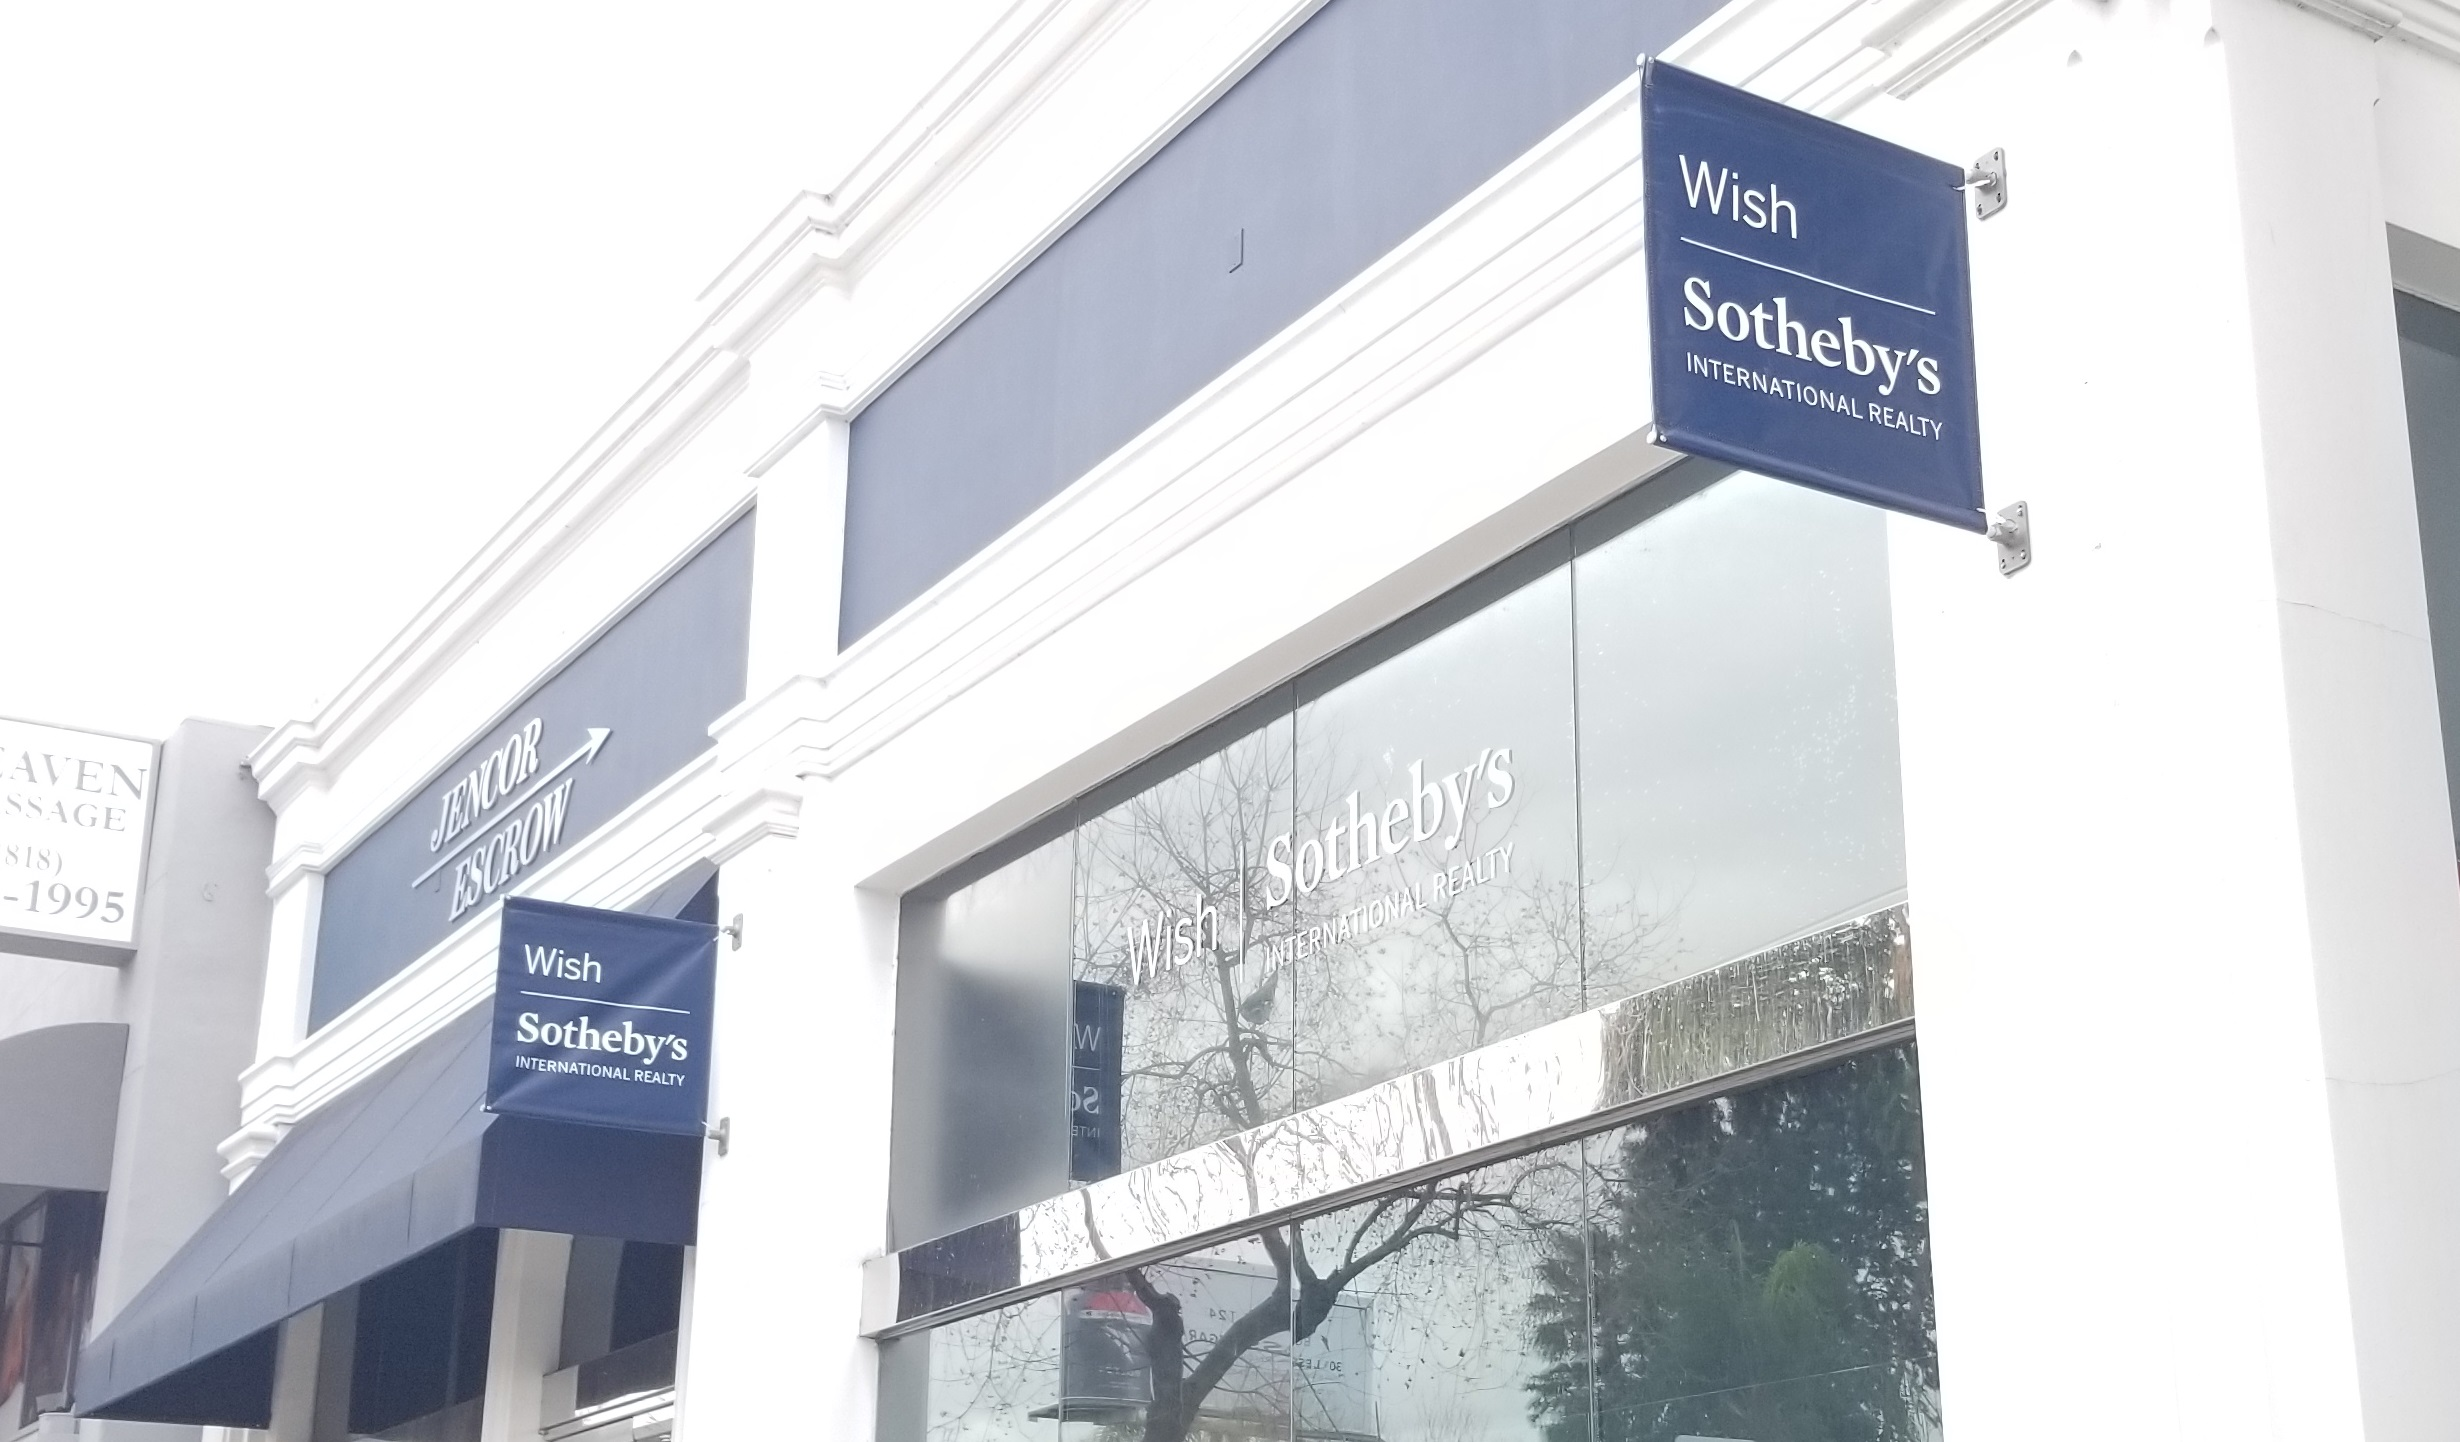 We made and installed two pole banner banners for Wish Sotheby's Sherman Oaks building. With these their entrance will be all the more attractive to customers.